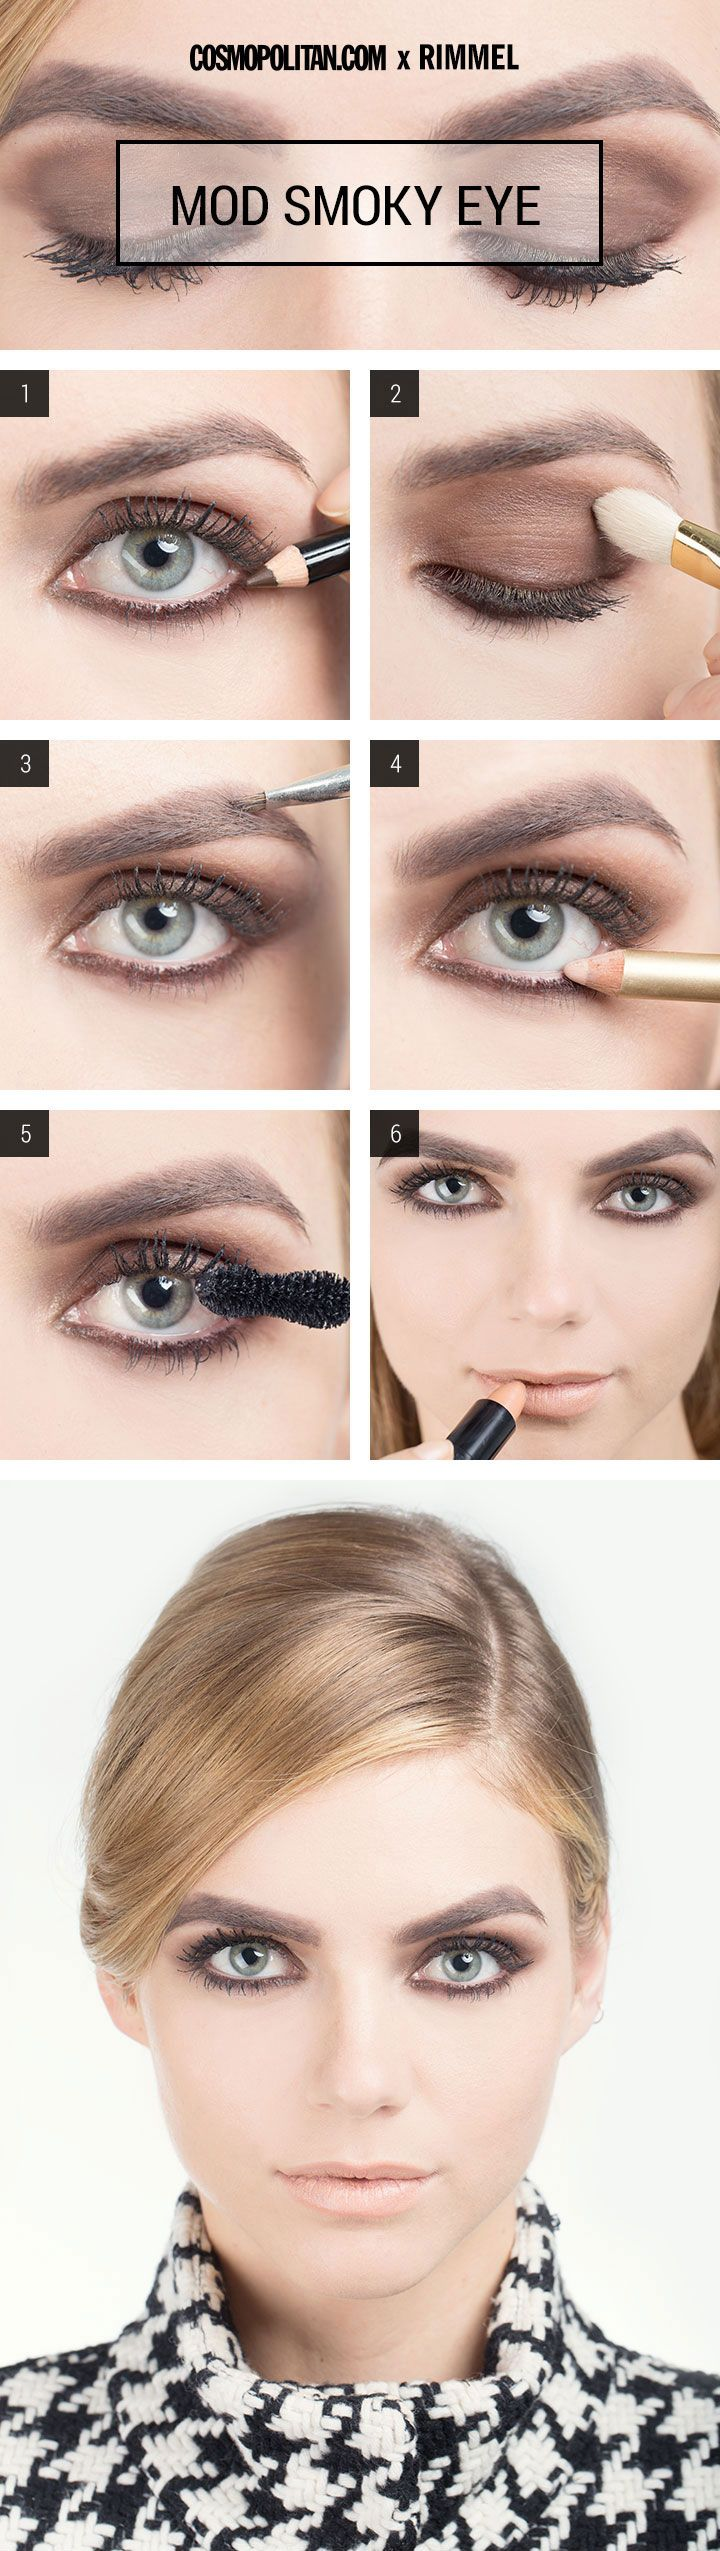 11perfect smoky eye makeup tutorials for different occasions mod smoky eye makeup tutorial baditri Images